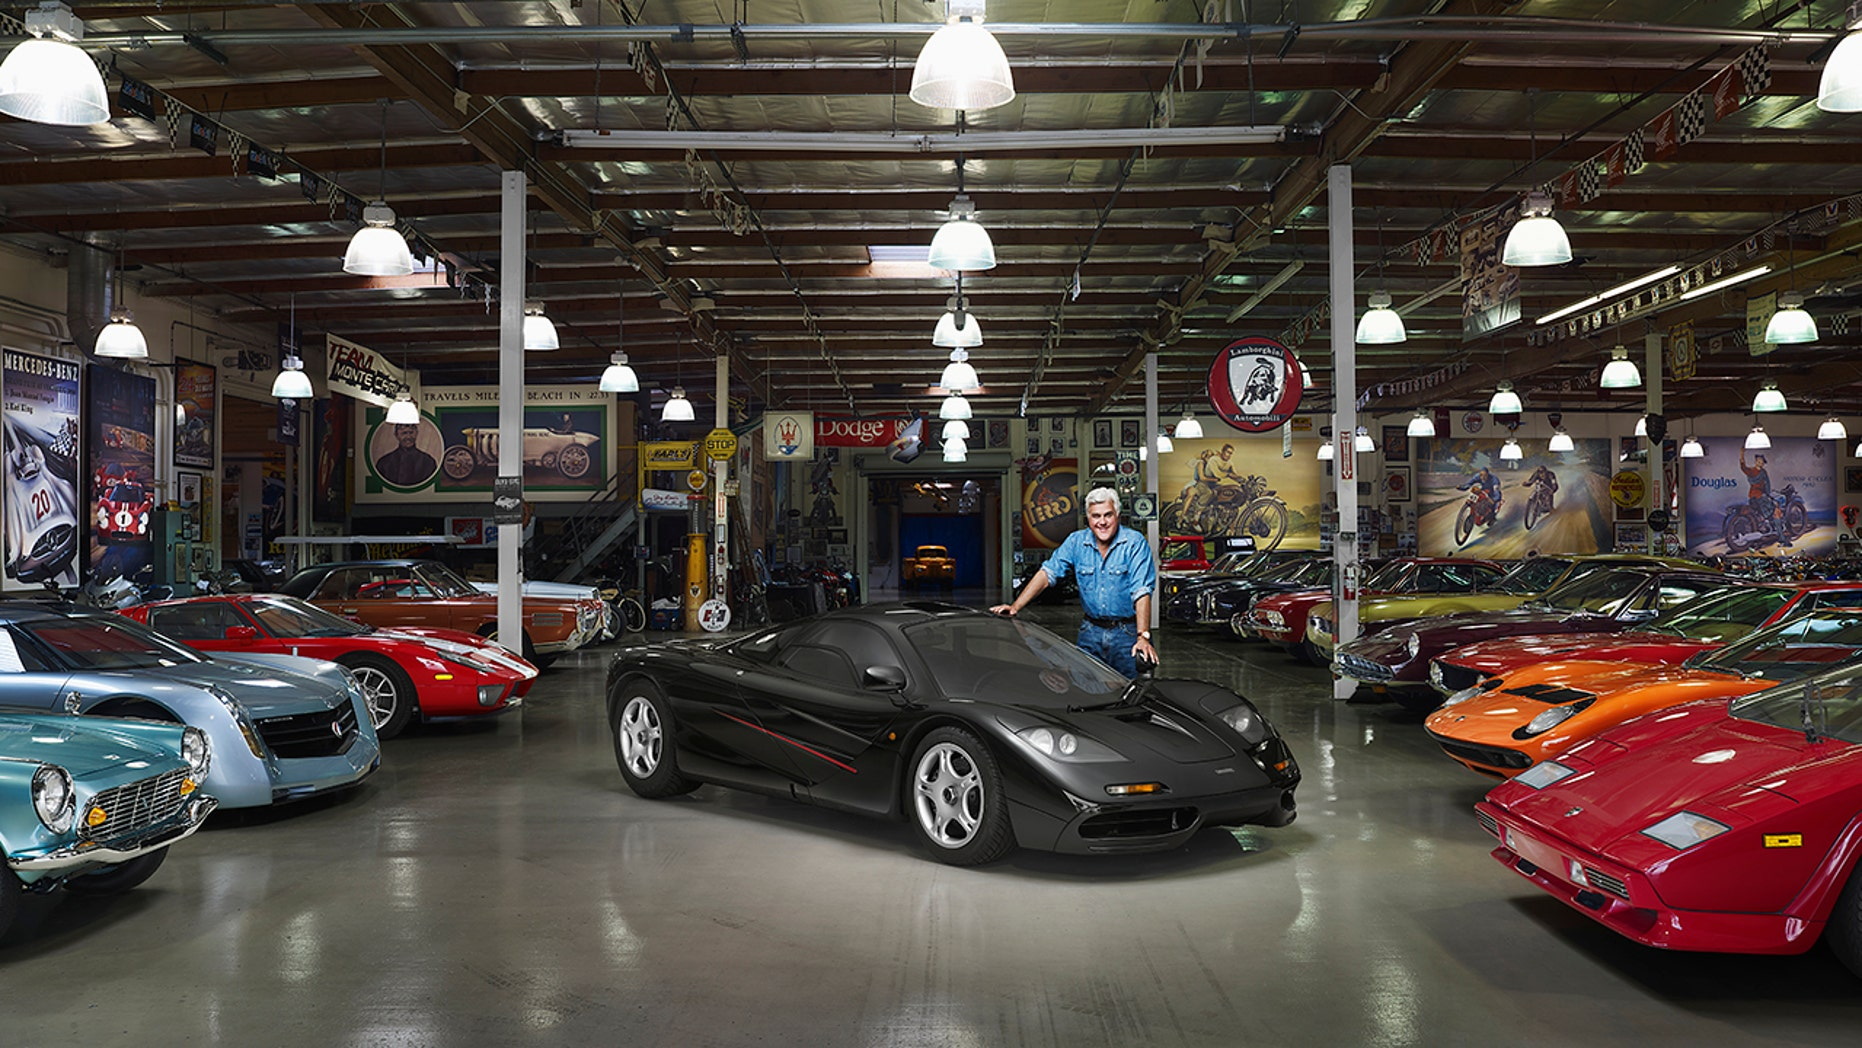 Jay Leno and his McLaren F1